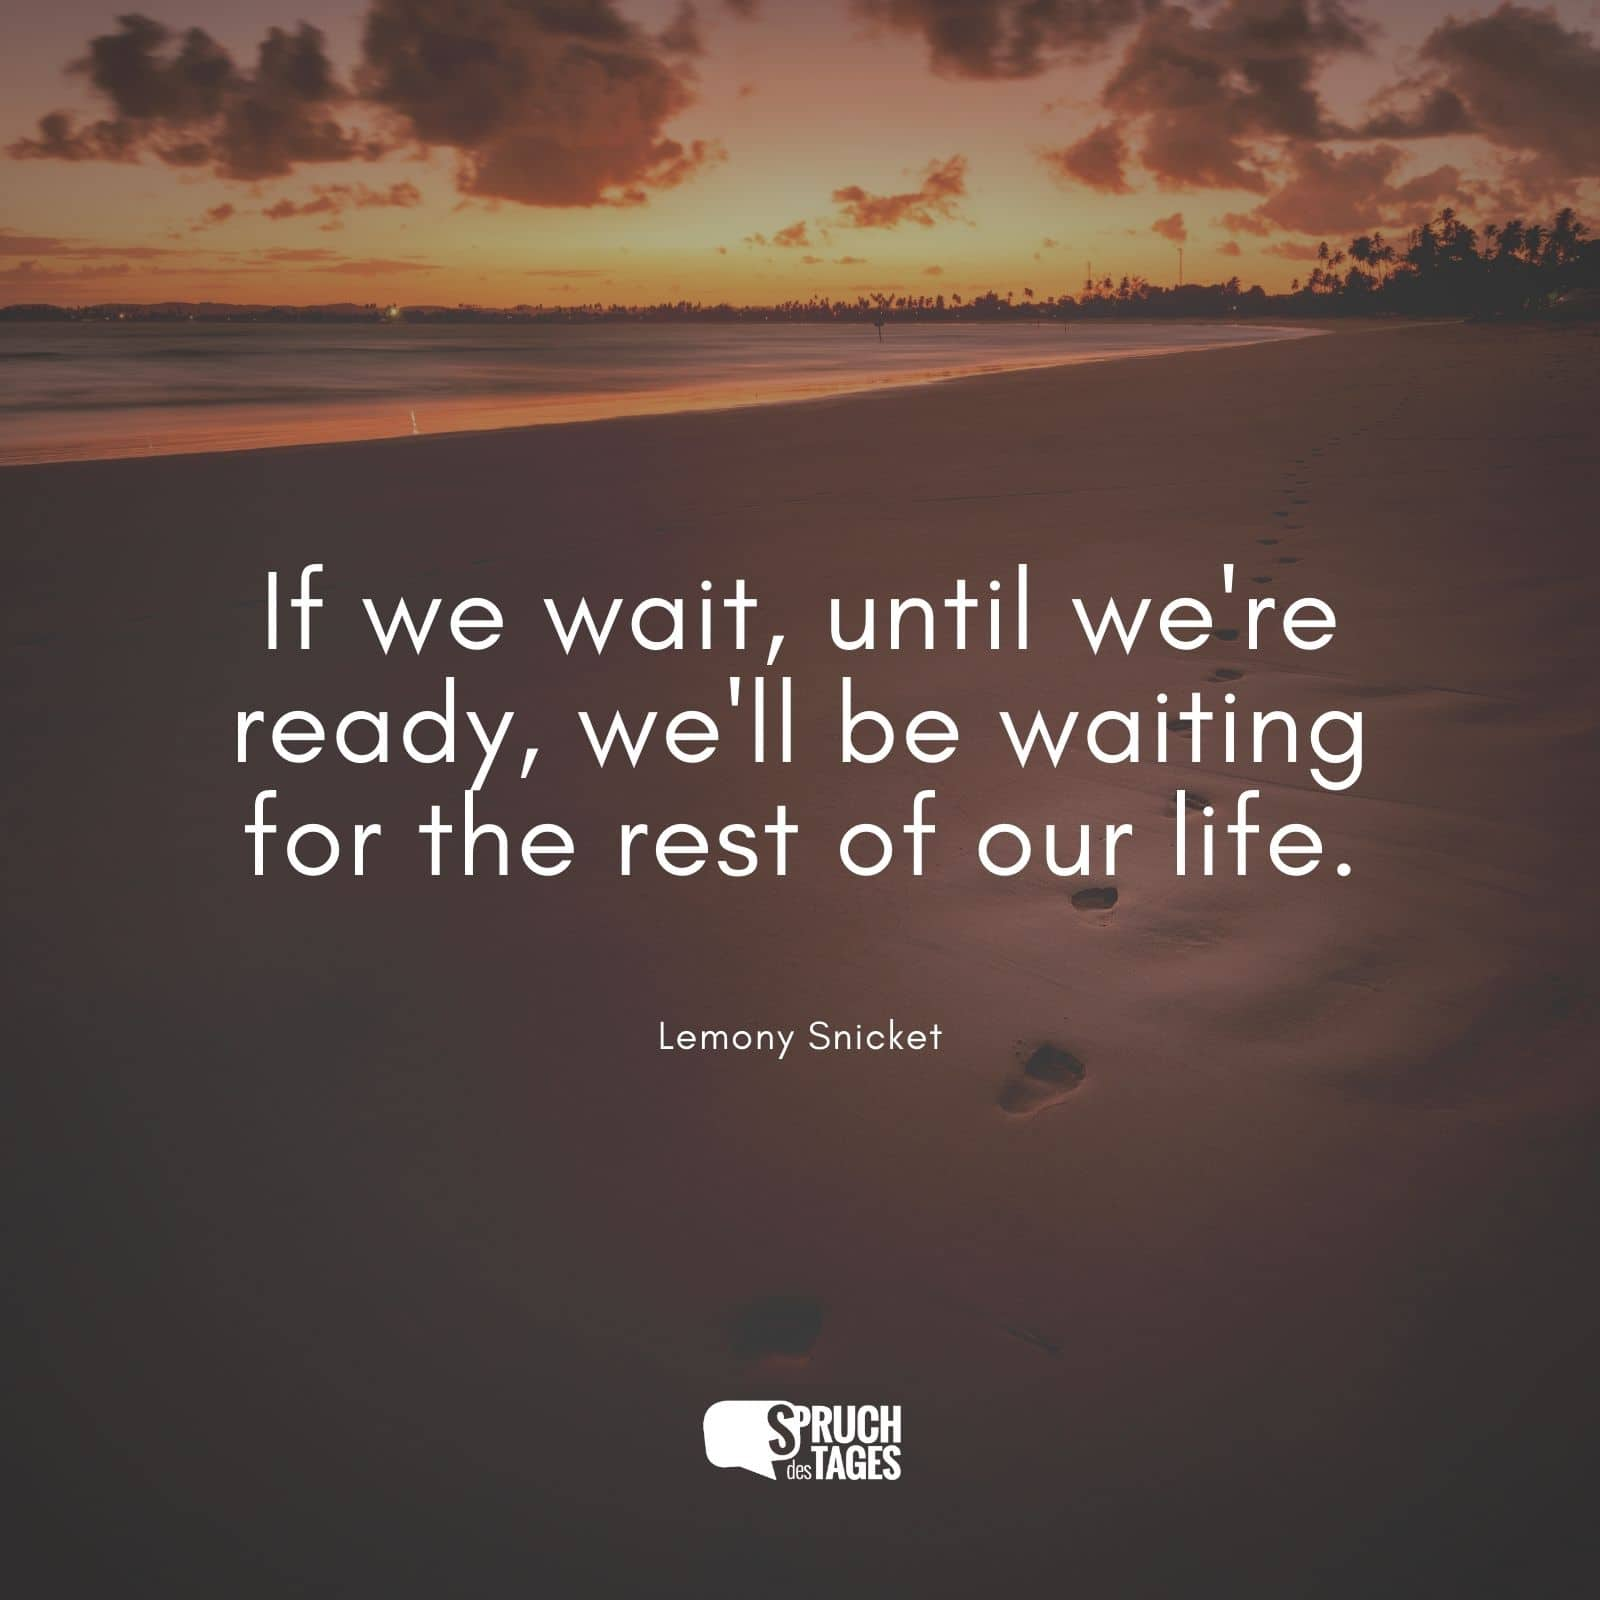 If we wait, until we're ready, we'll be waiting for the rest of our life.